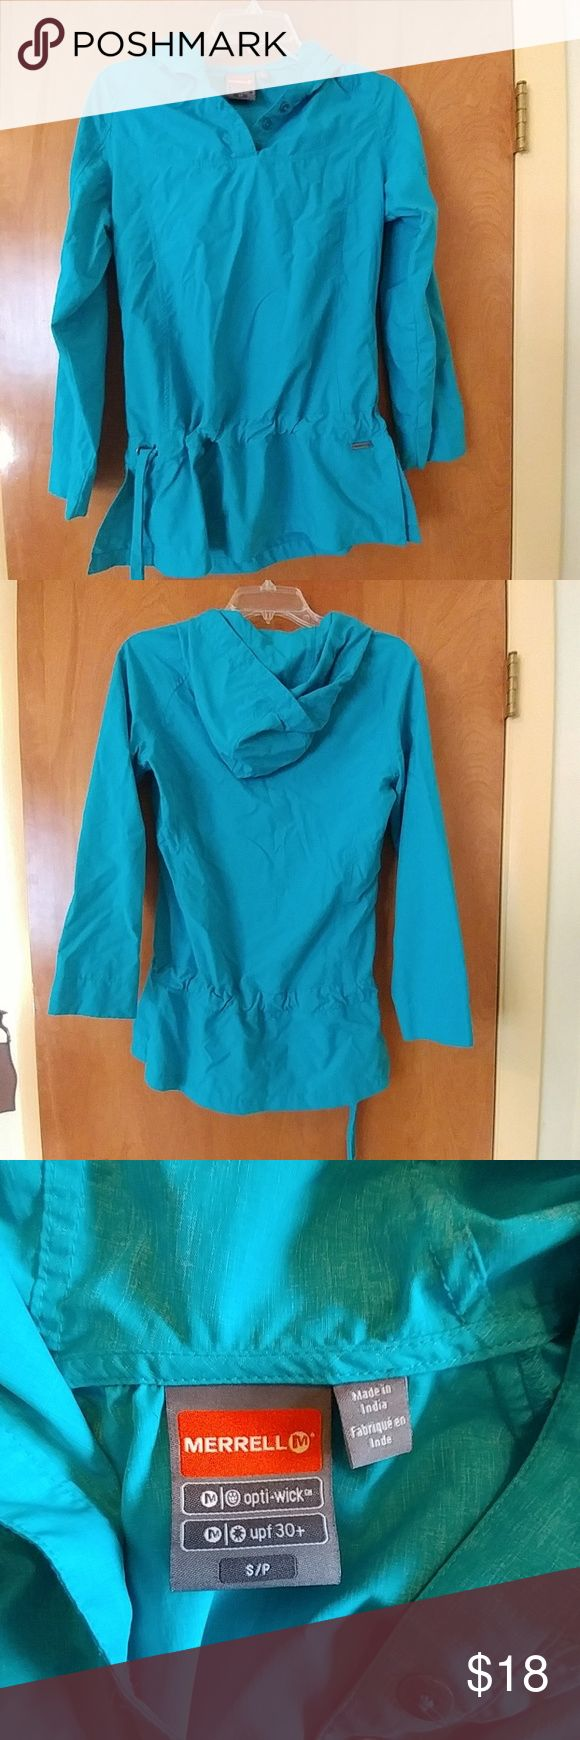 Merrell light pull-over hoodie w/UPF 30 Super lightweight spring jacket with hood and drawstring waist. Has UPF 30+ and wicking properties, so it makes a great river or hiking shirt. Longer length, looks cute with leggings. Color is kind of teal heather. Merrell Jackets & Coats